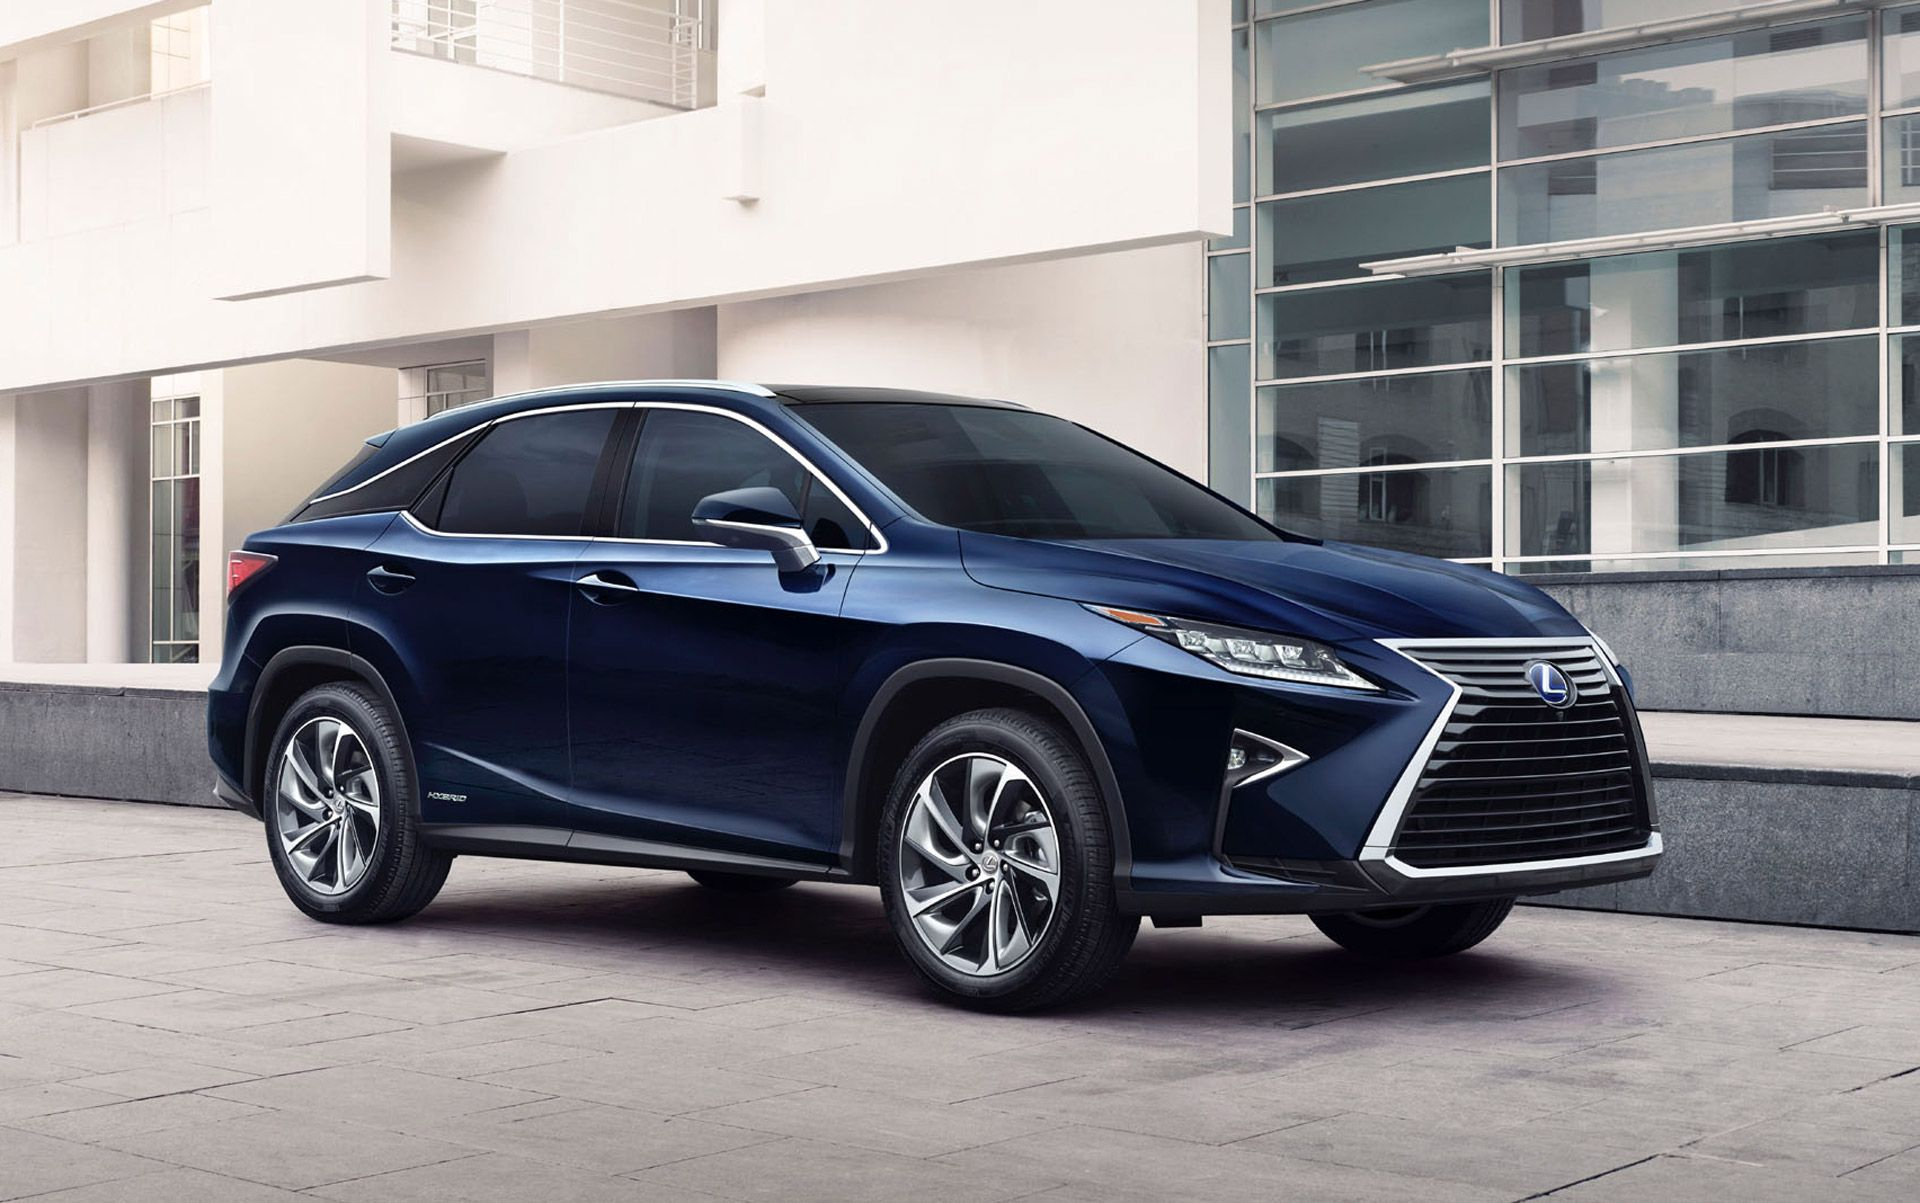 2016 Lexus Rx 450 Google Search Camioneta Pinterest Cars